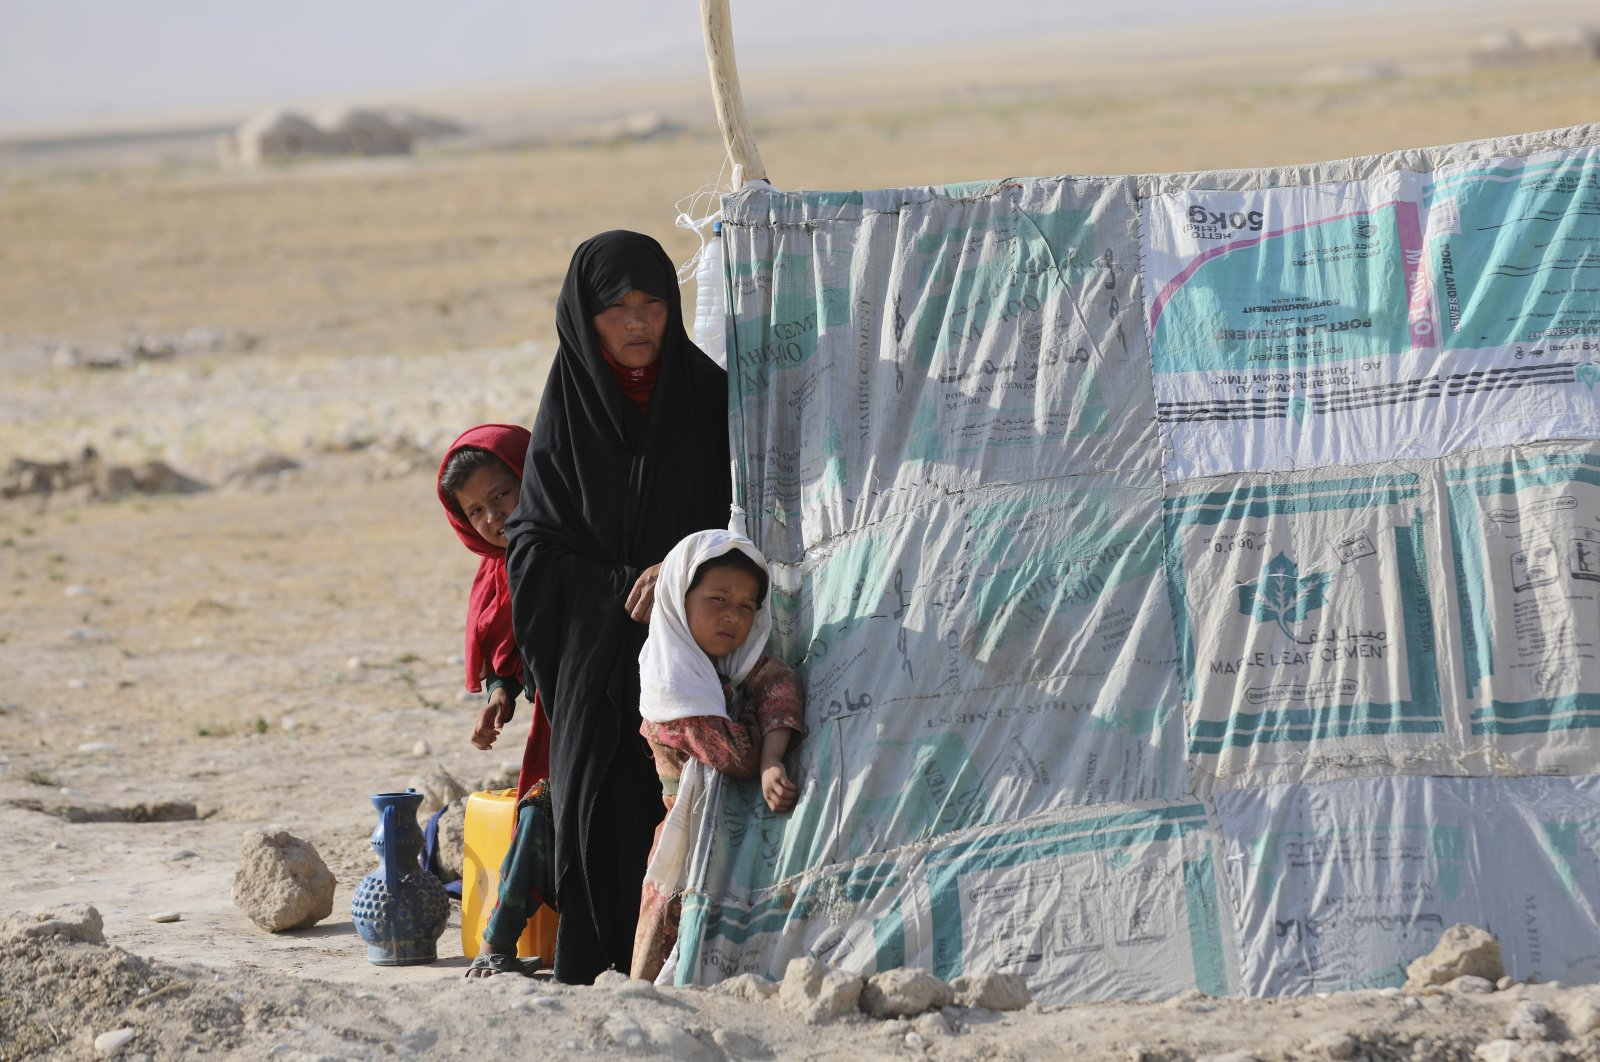 An internally displaced Afghan woman stands with her daughters in front a makeshift tent in a camp on a rocky patch of land, after fleeing fighting between the Taliban and Afghan security personnel, on the edge of the city of Mazar-e-Sharif, northern Afghanistan, July 8, 2021. (AP Photo)